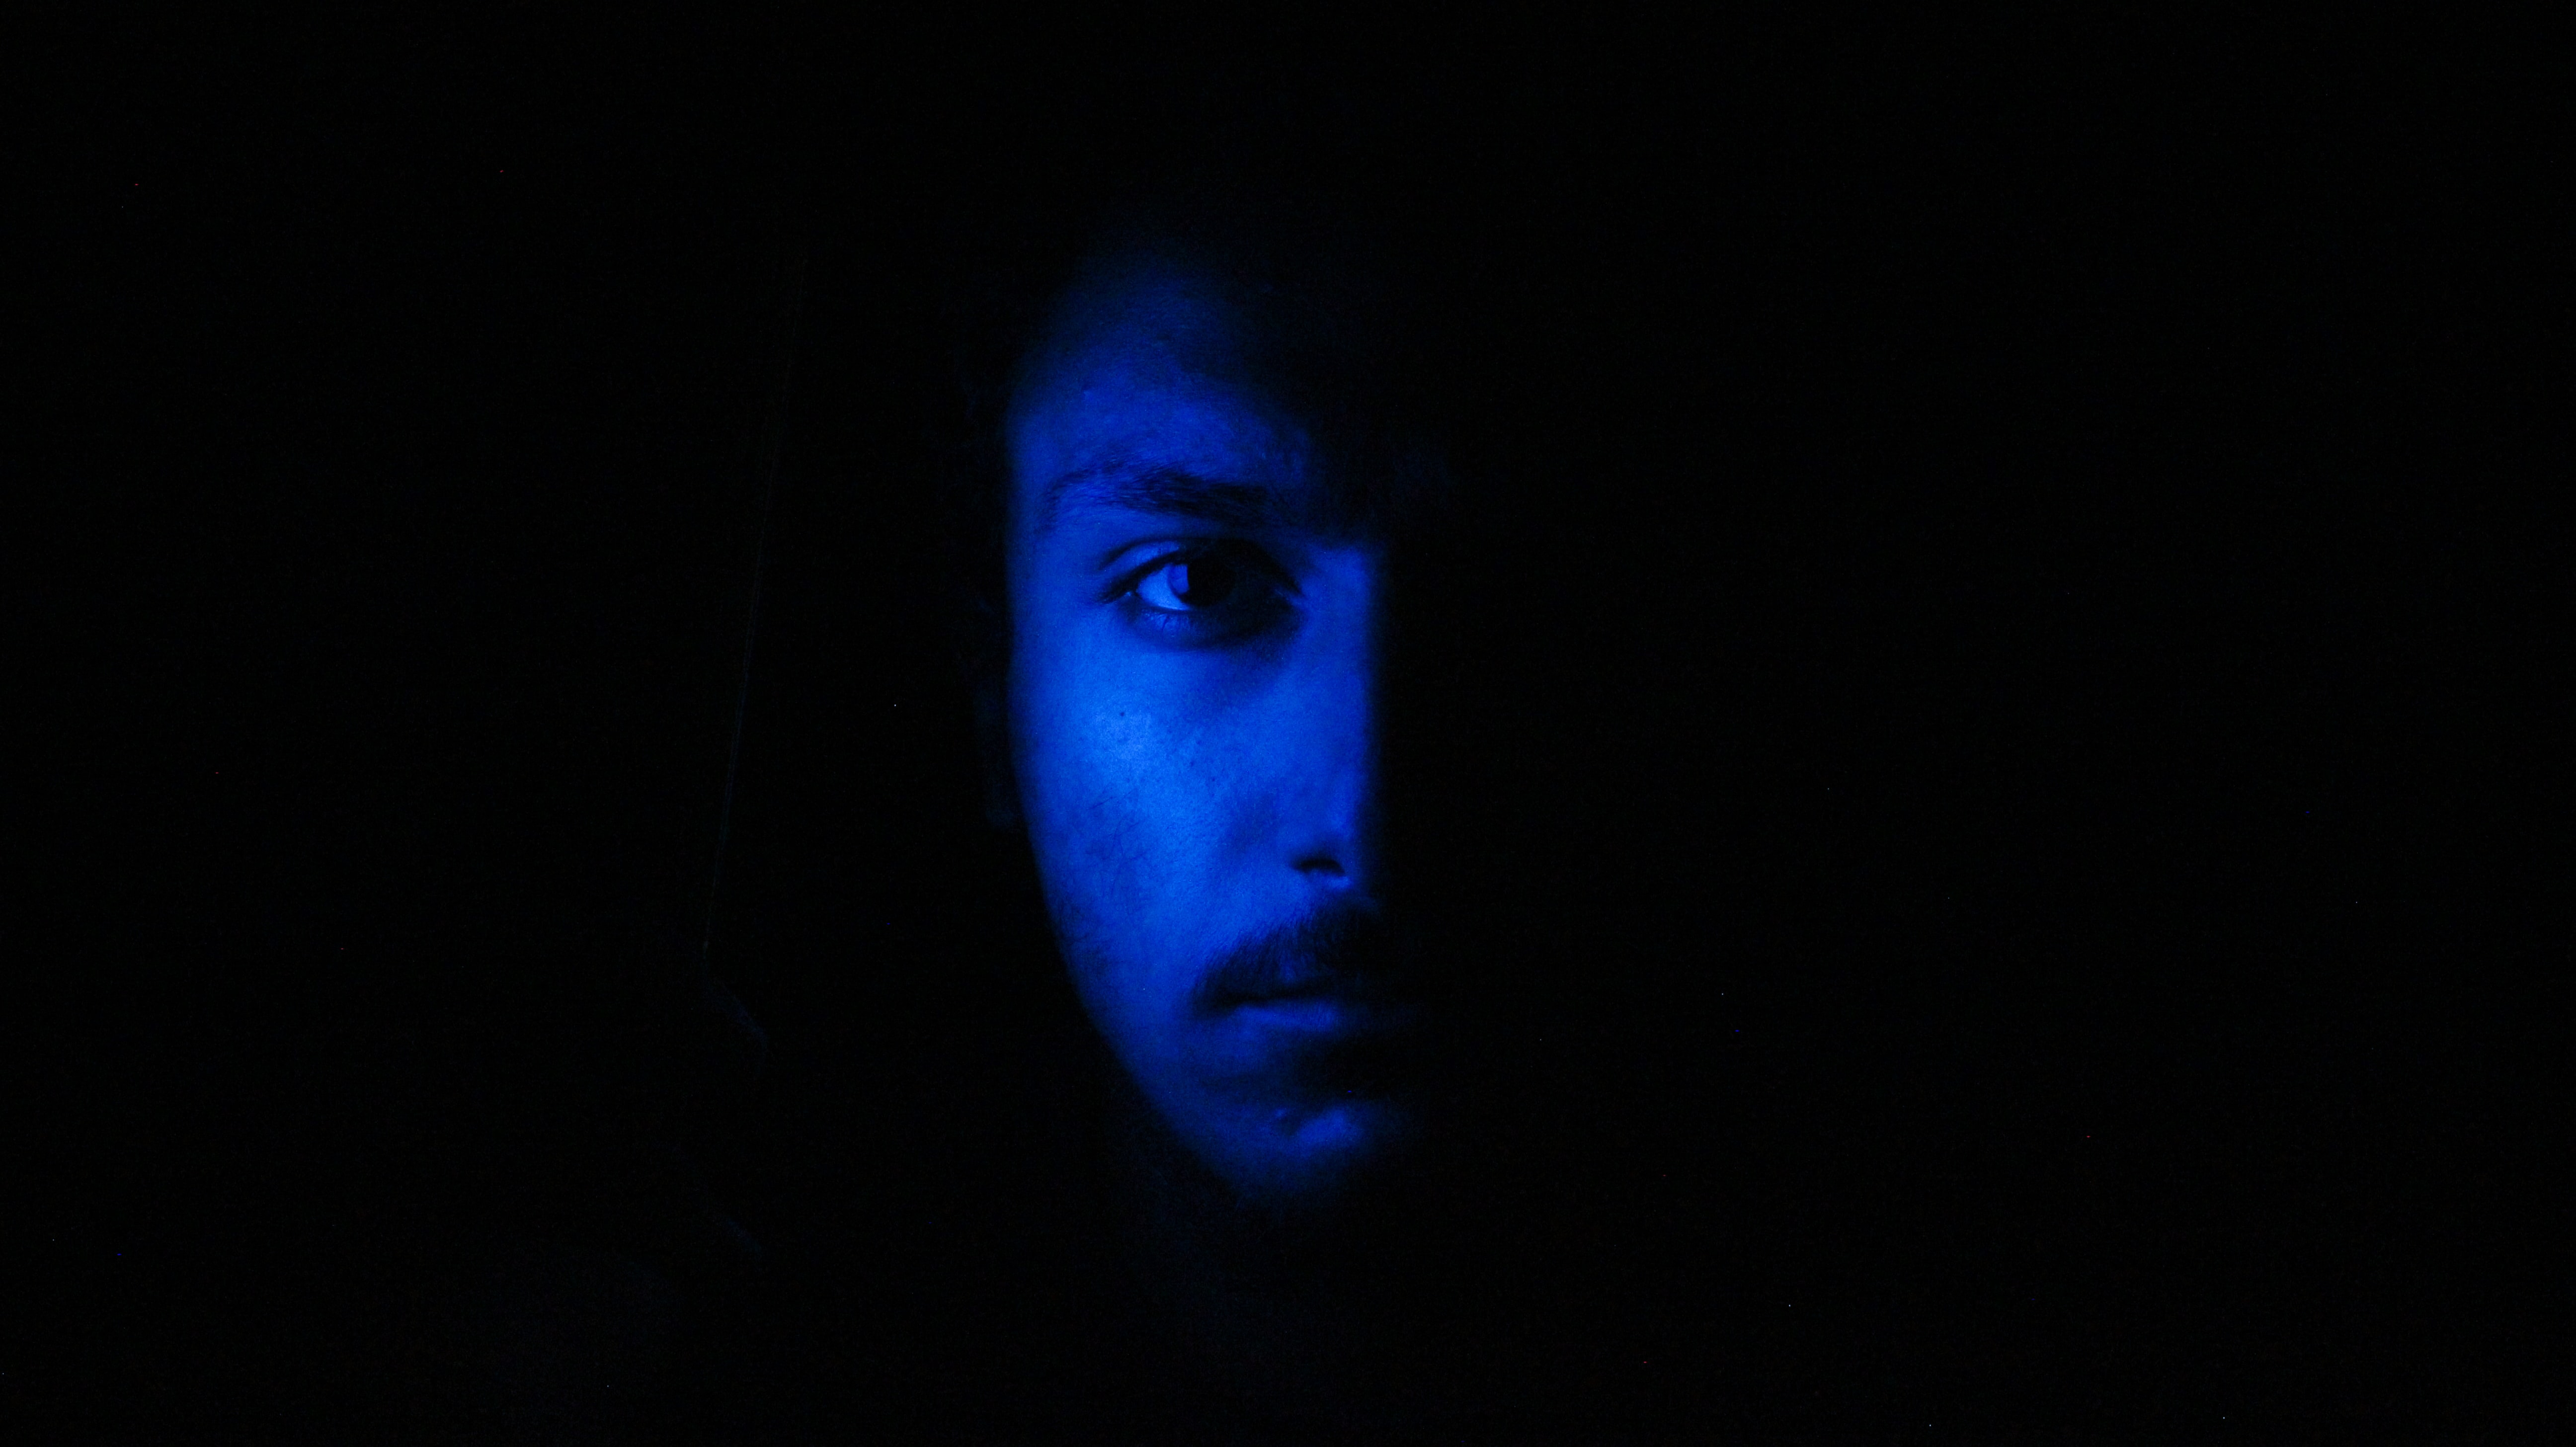 man's face against blue light